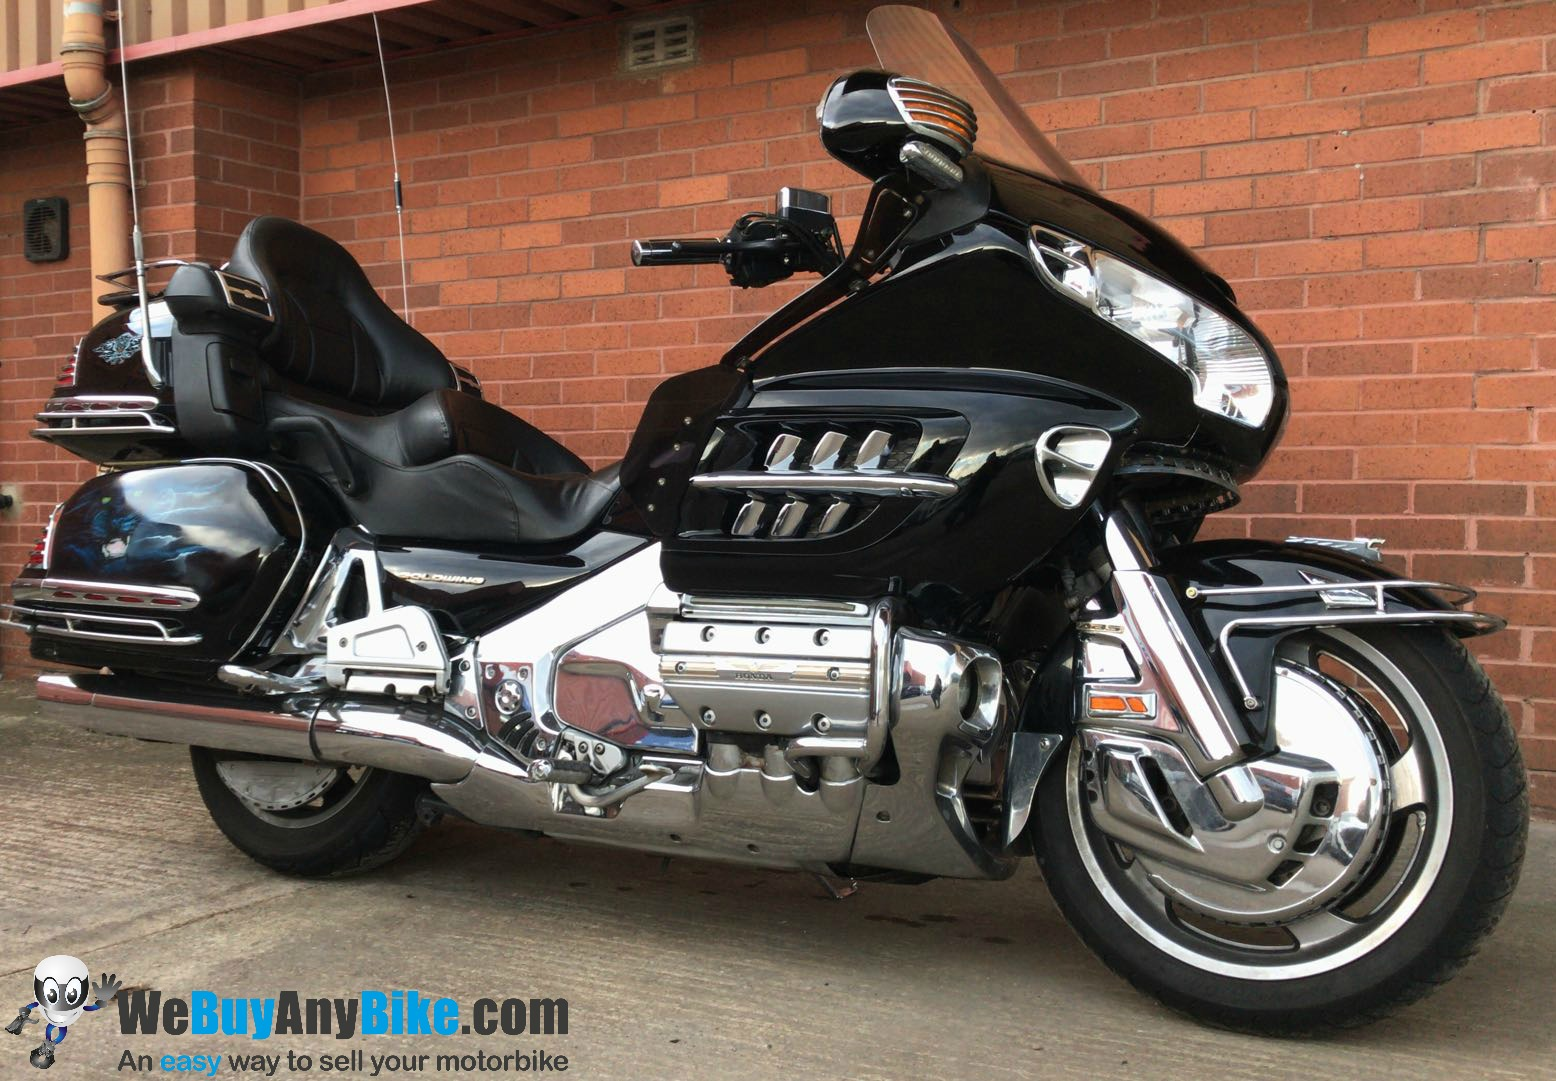 goldwing - bike trader - honda - sell motorbike - sell your bike online - value my motorbike - webuyanybike - we buy any bike - motorcycle trader bike trader - biketrader - sell my bike - motorbike trader - motorbiketrader - sell my motorcycle - sell my motorbike for cash